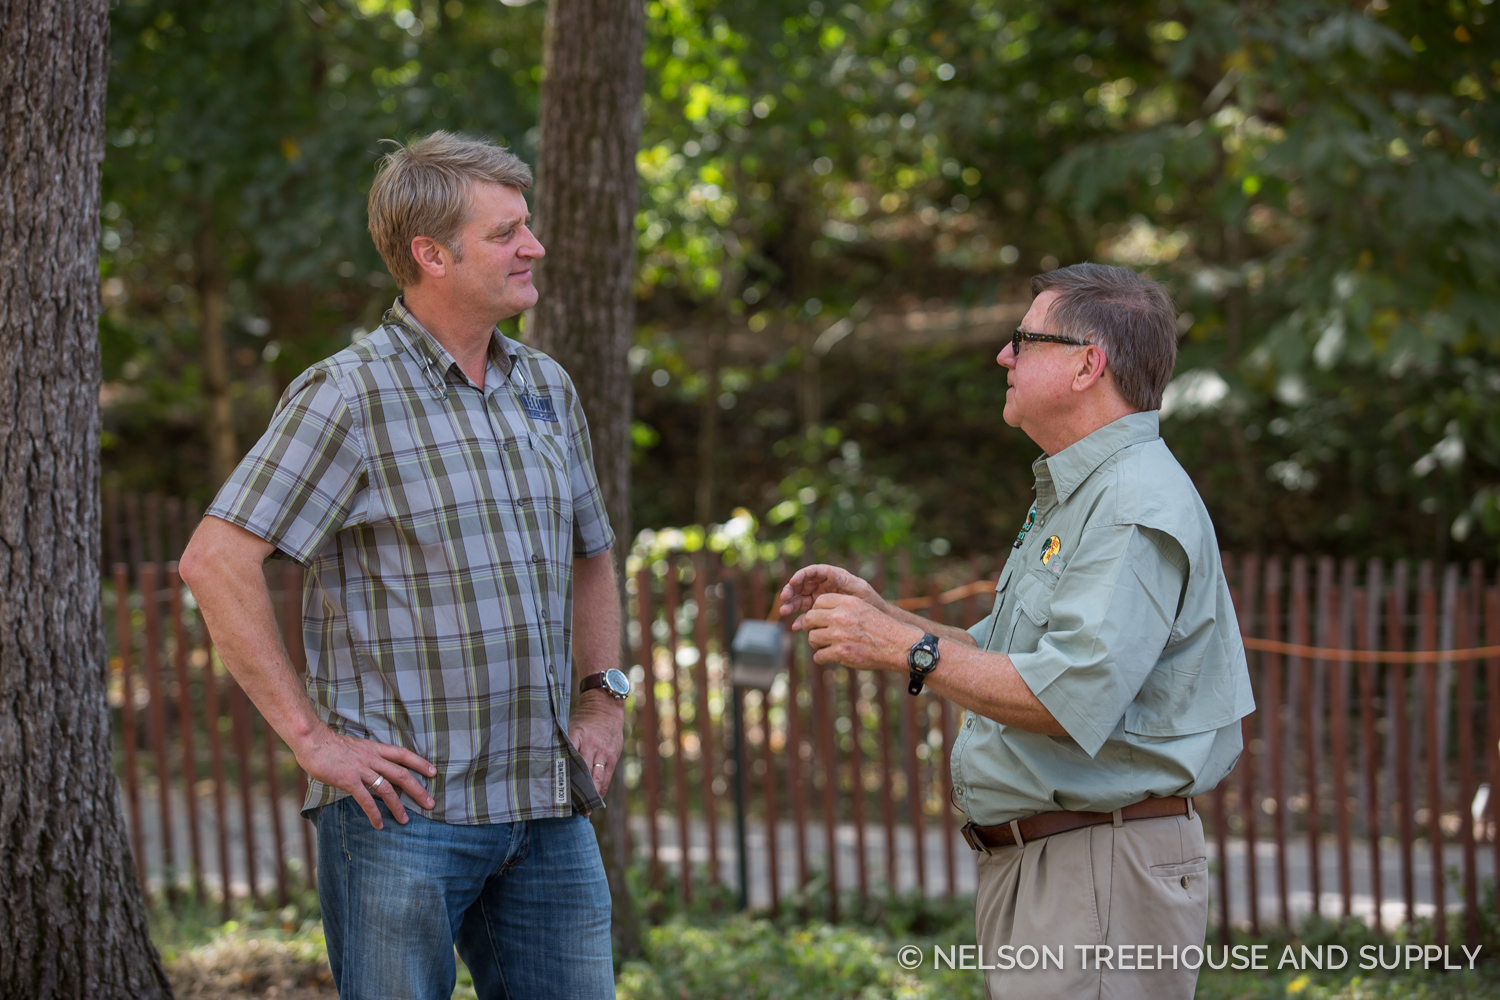 MARTIN MACDONALD DISCUSSES PLANS FOR THE TREEHOUSE WITH PETE.